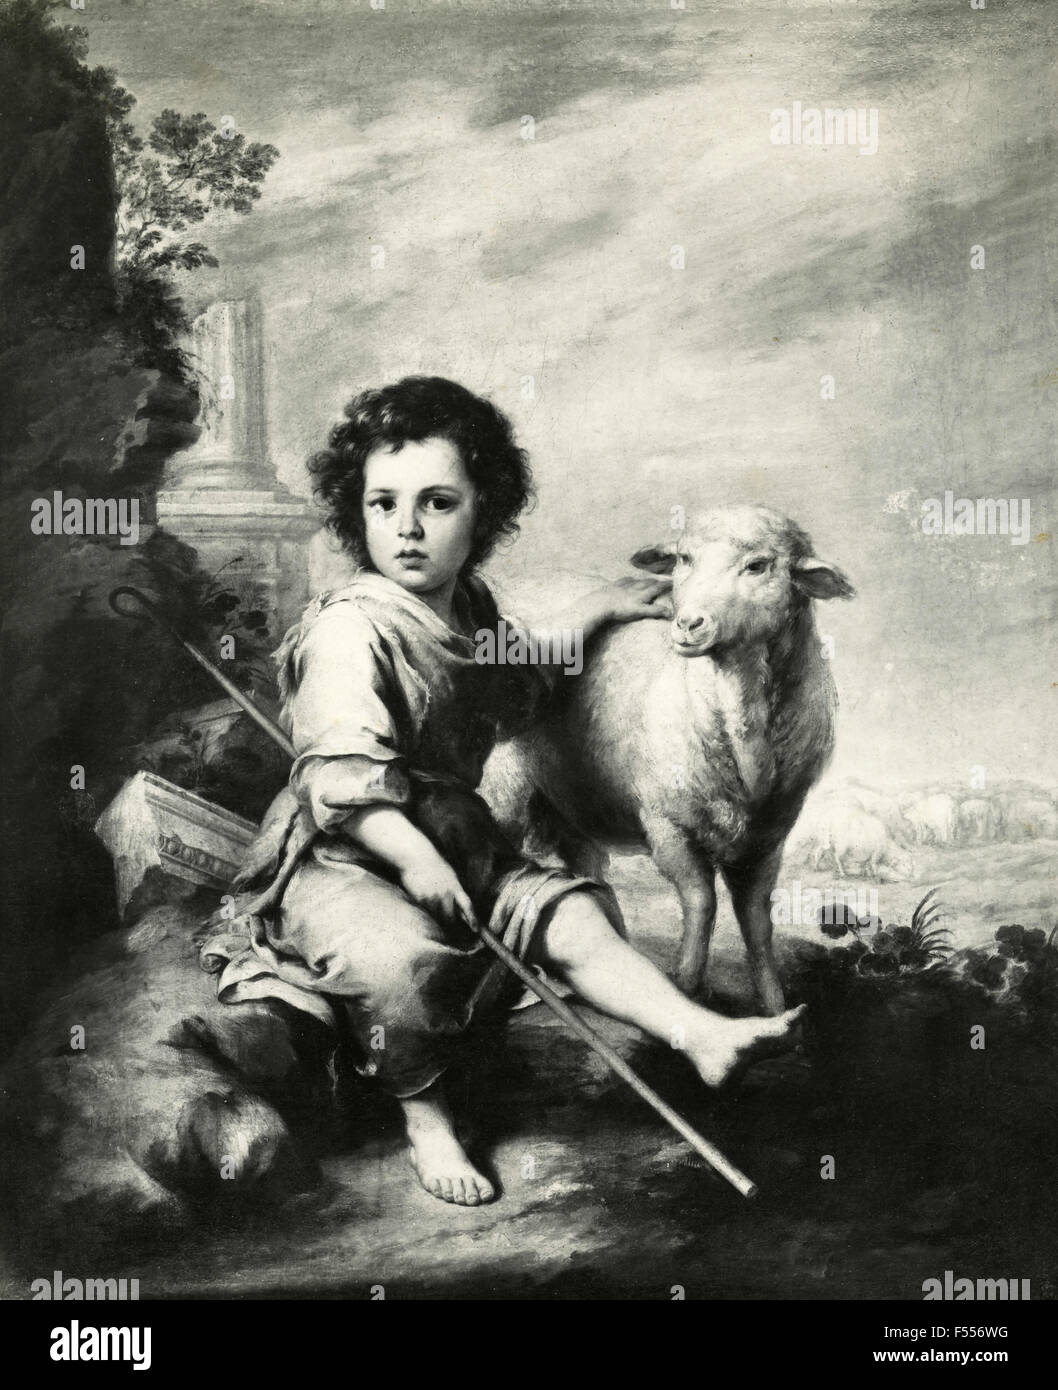 Prado picture gallery: The Divine Shepherd, painting by Murillo - Stock Image